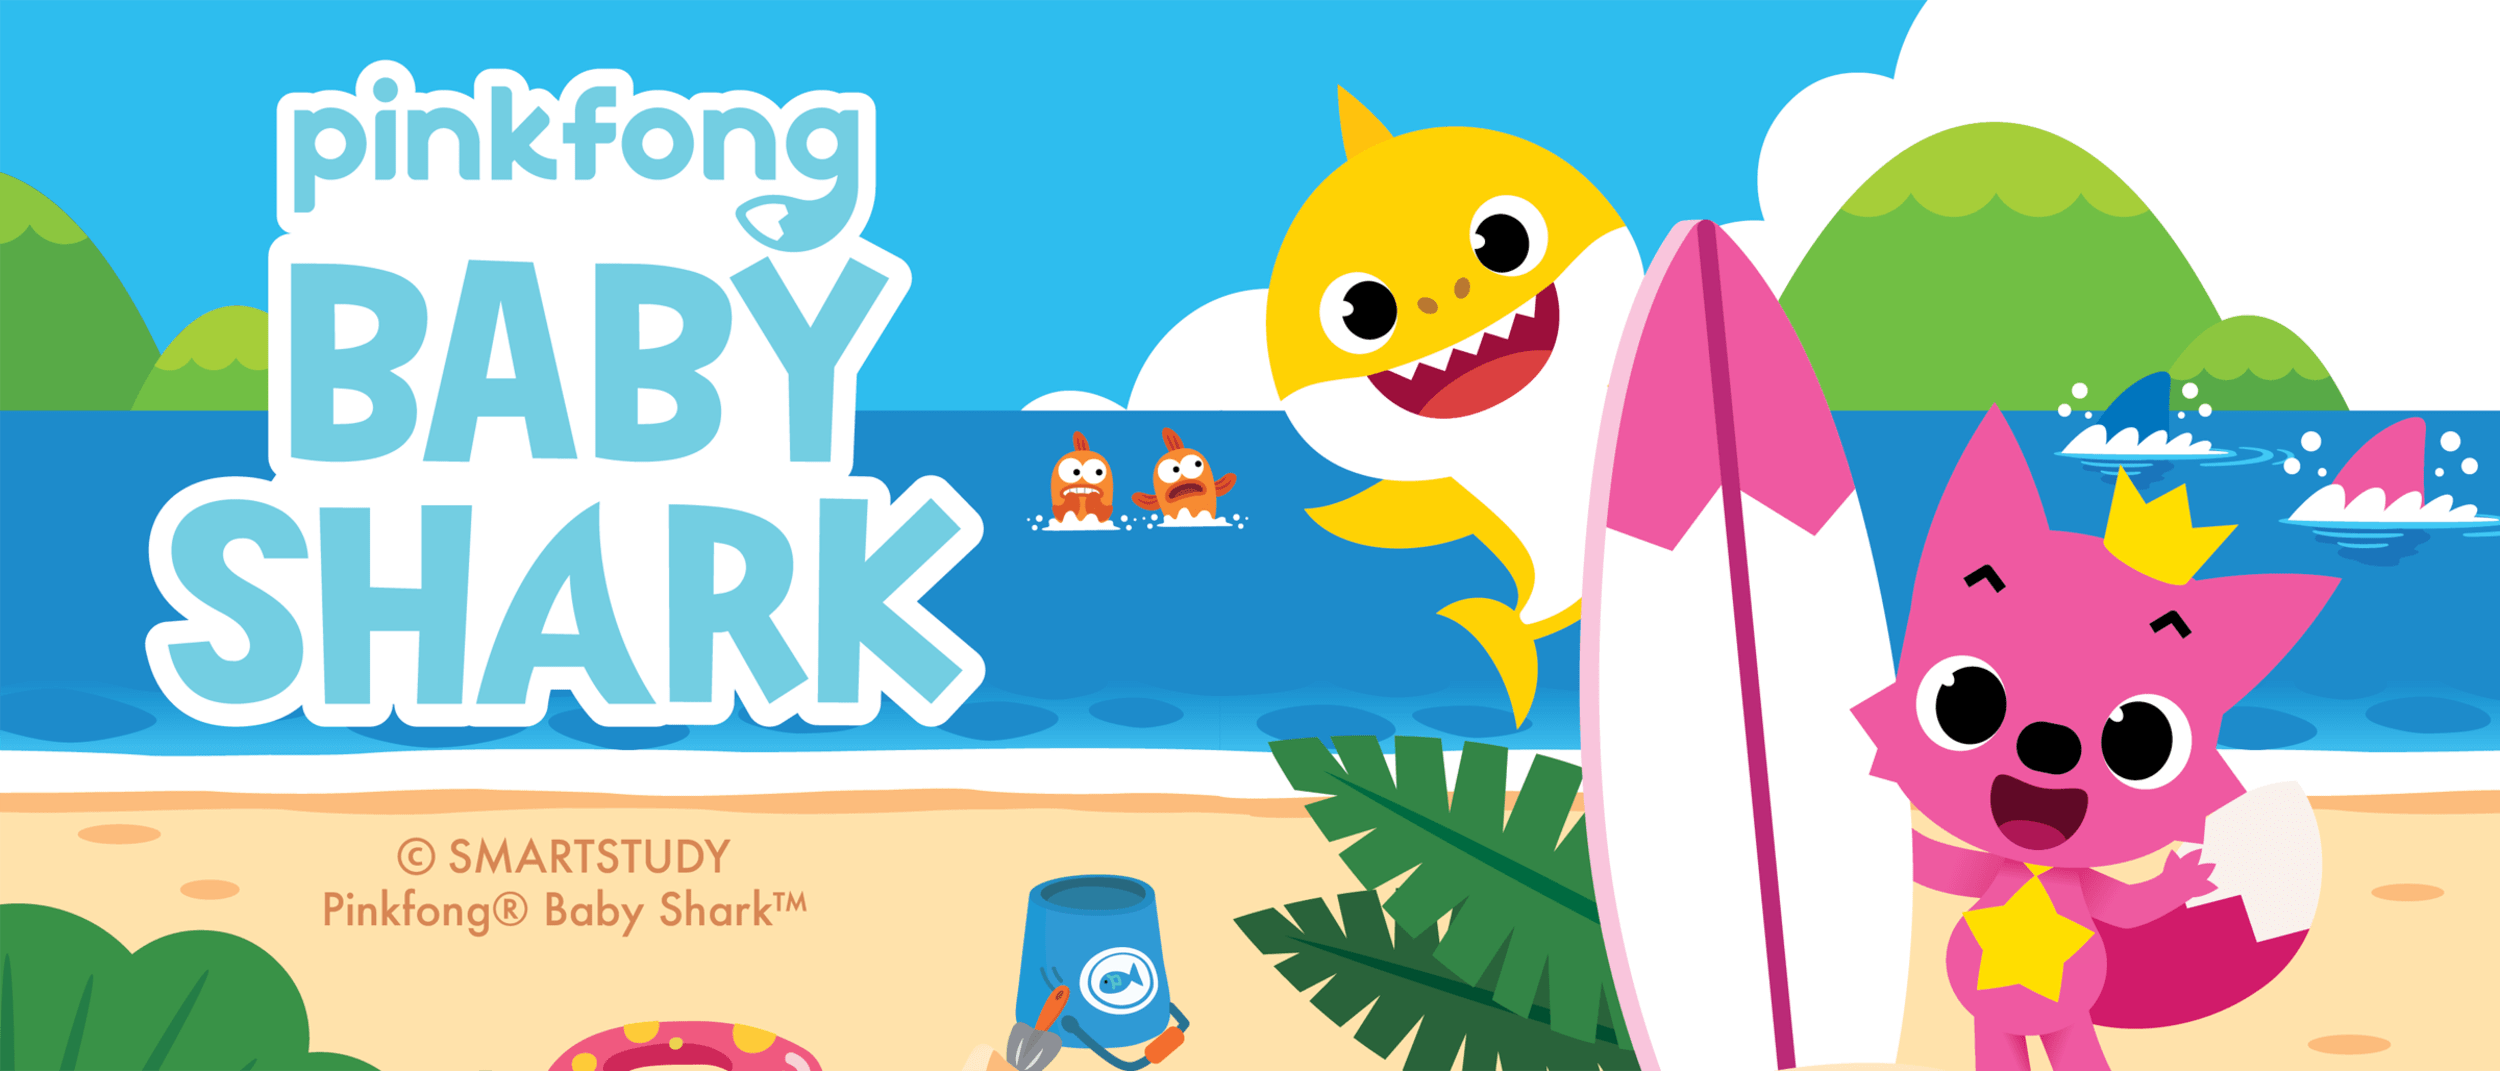 Pinkfong & Baby Shark Stage Show - Fully Booked